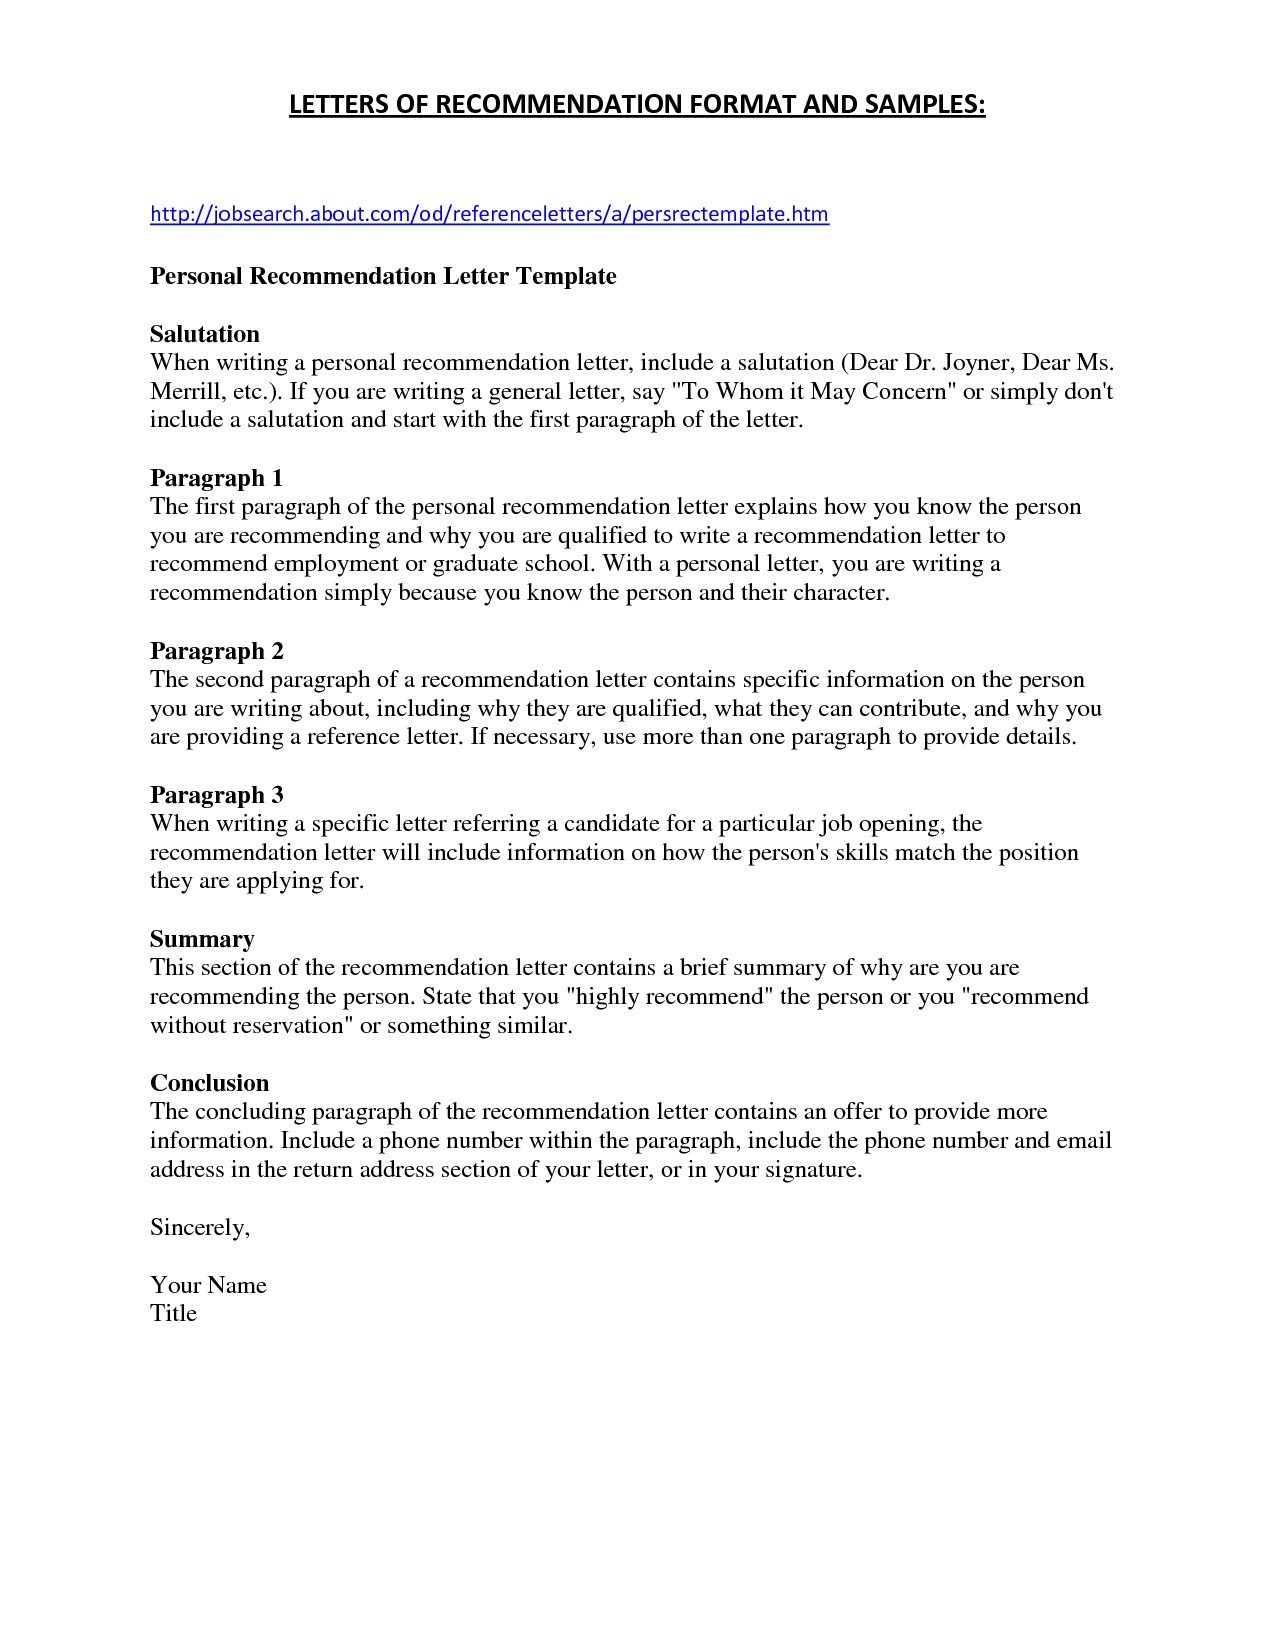 Grad School Resume - 18 Graduate School Application Resume